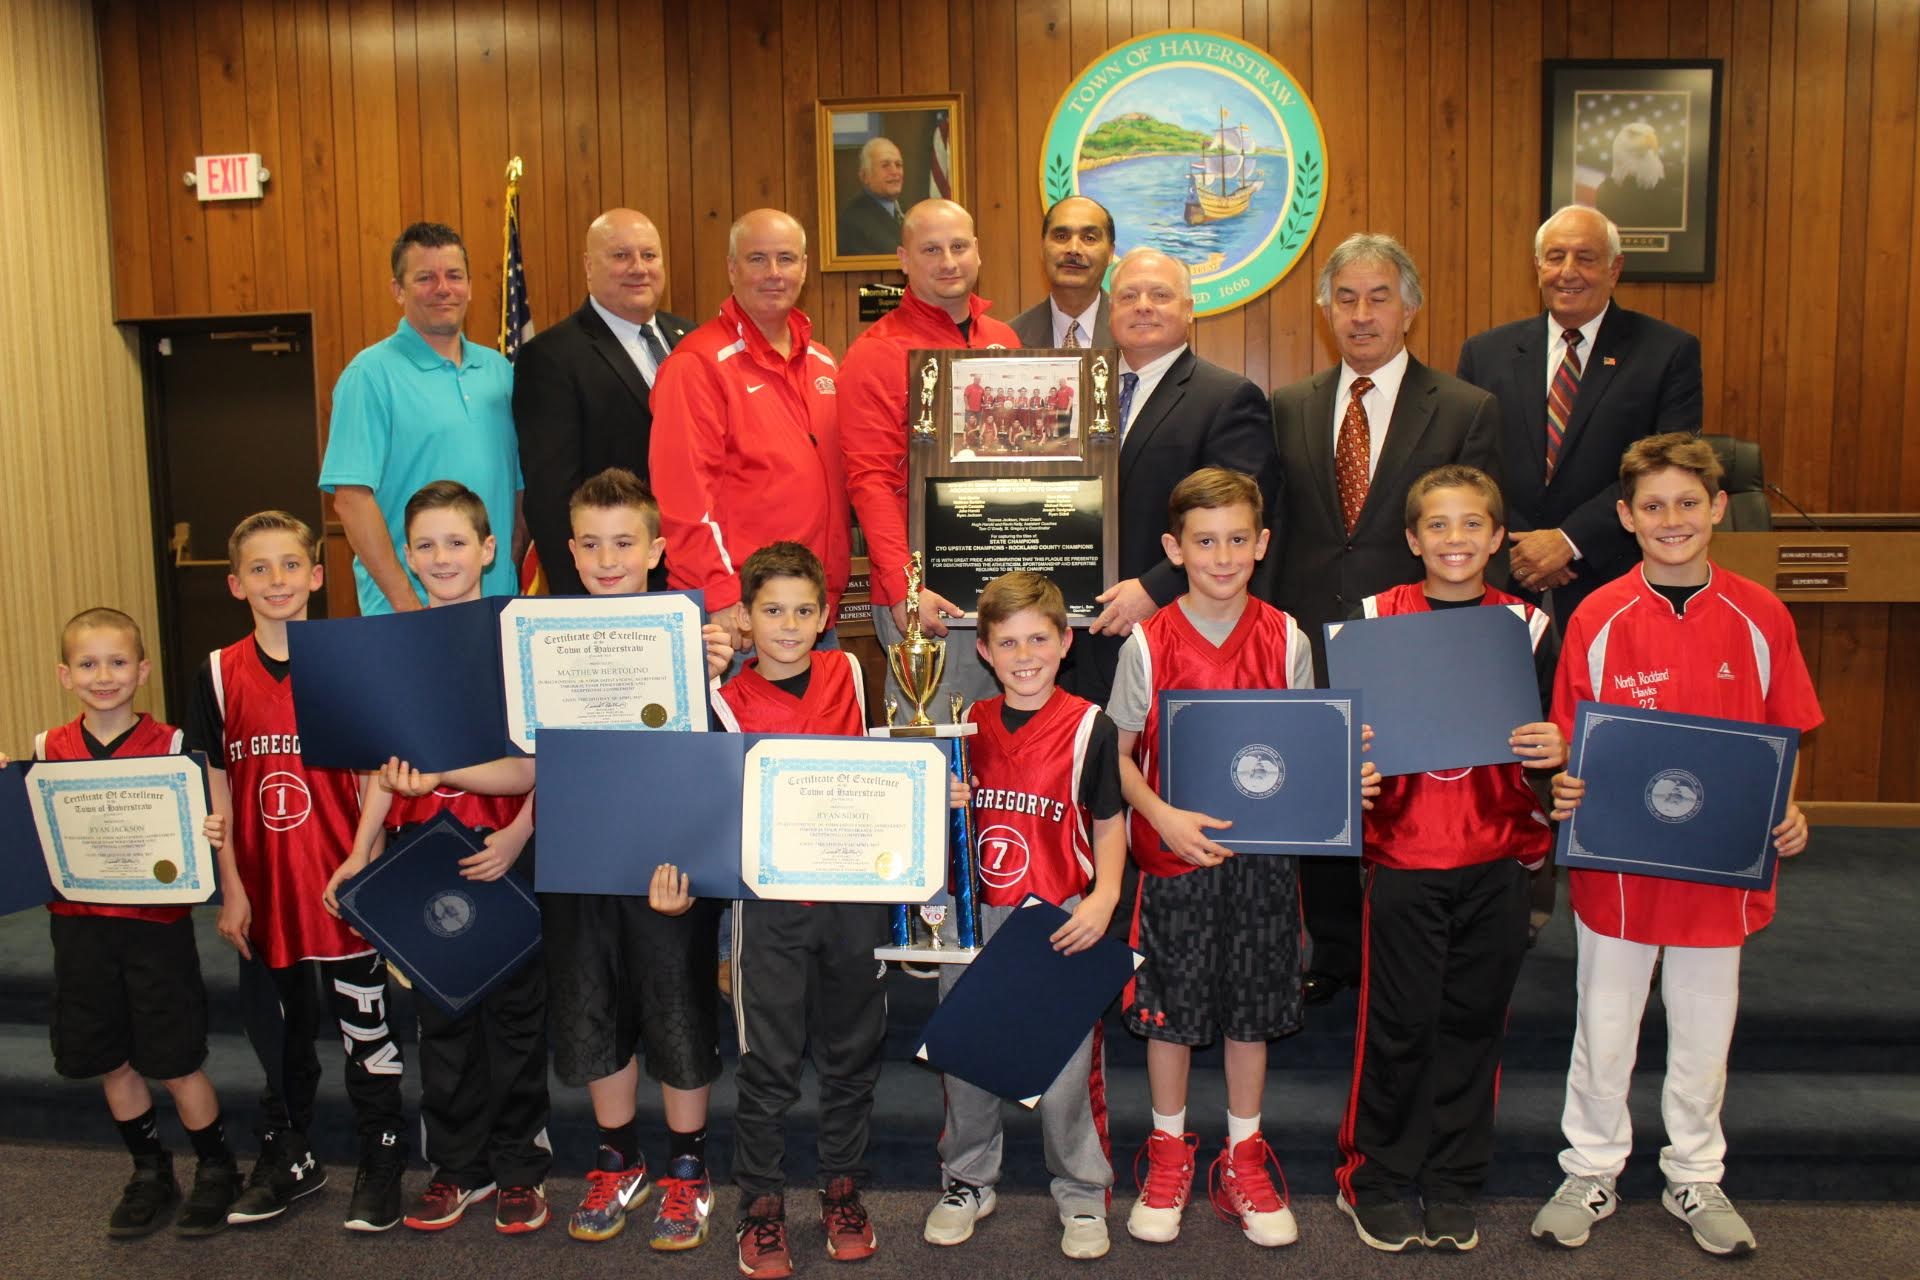 STATE CHAMPION CYO TEAM RECOGNIZED BY TOWN BOARD